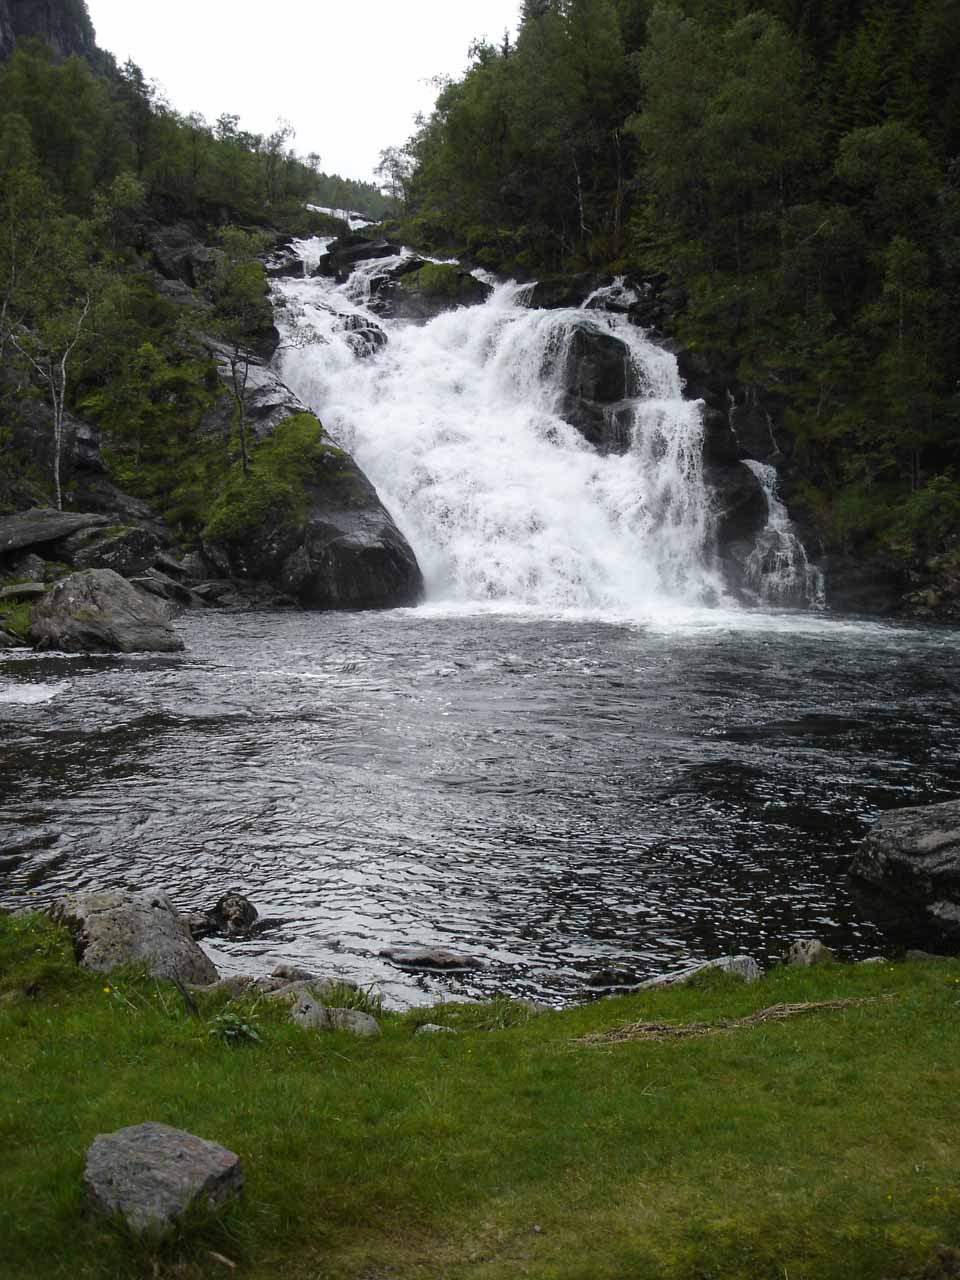 A closer look at that waterfall west of Fossen Bratte